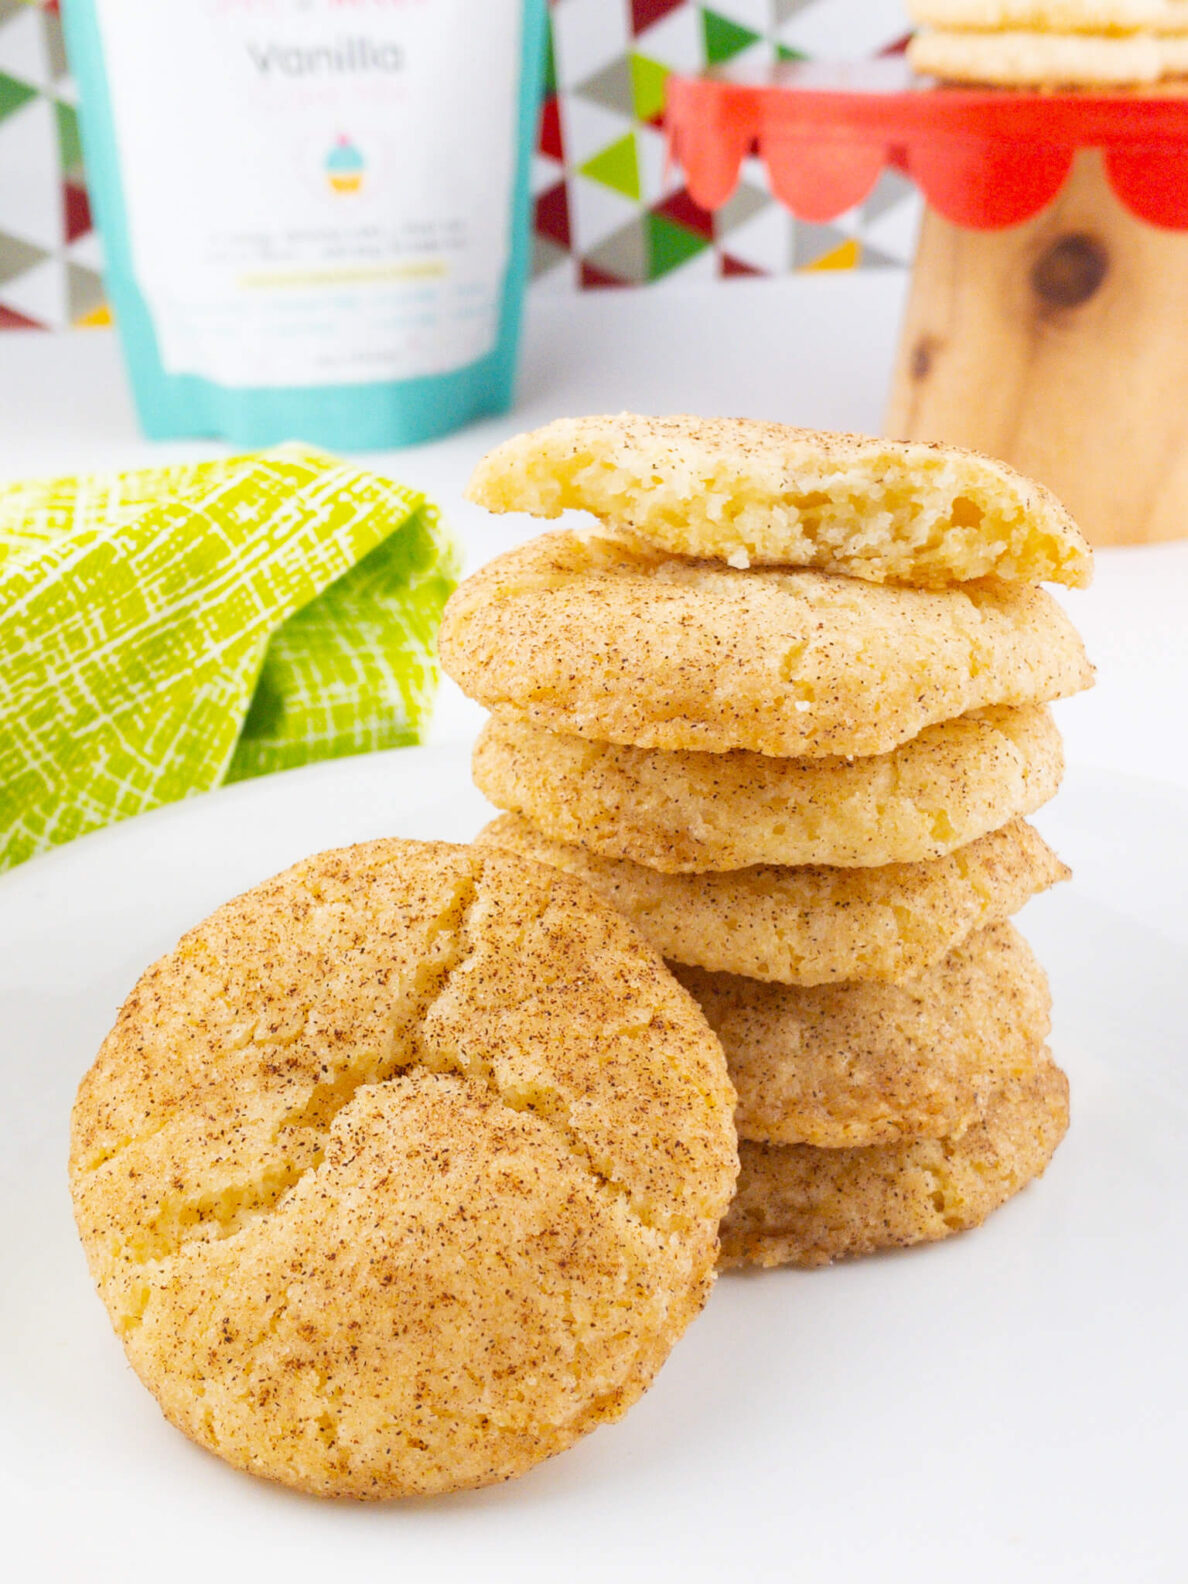 Kate's Safe and Sweet - Cinnamon Sugar Cookies